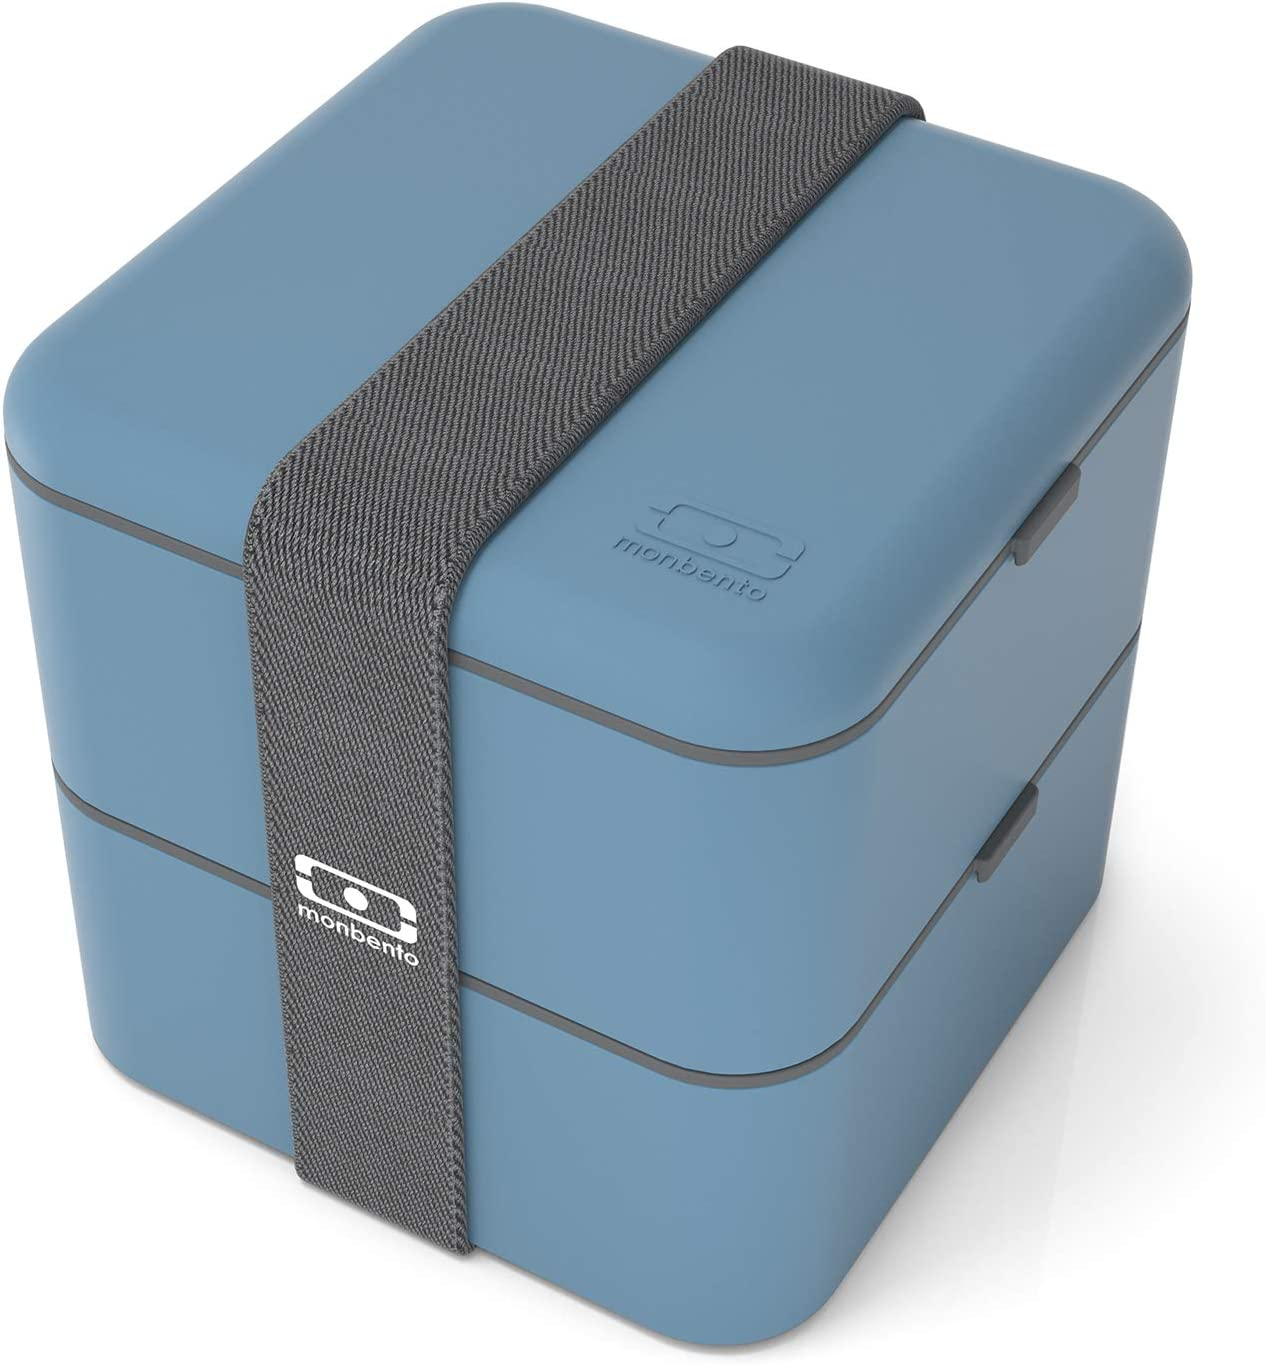 monbento - MB Square Denim Blue bento Box - Large - 2 Tier Leakproof Lunch Box for Work/School Lunch Packing and Meal prep - BPA Free - Food Grade Safe Food containers